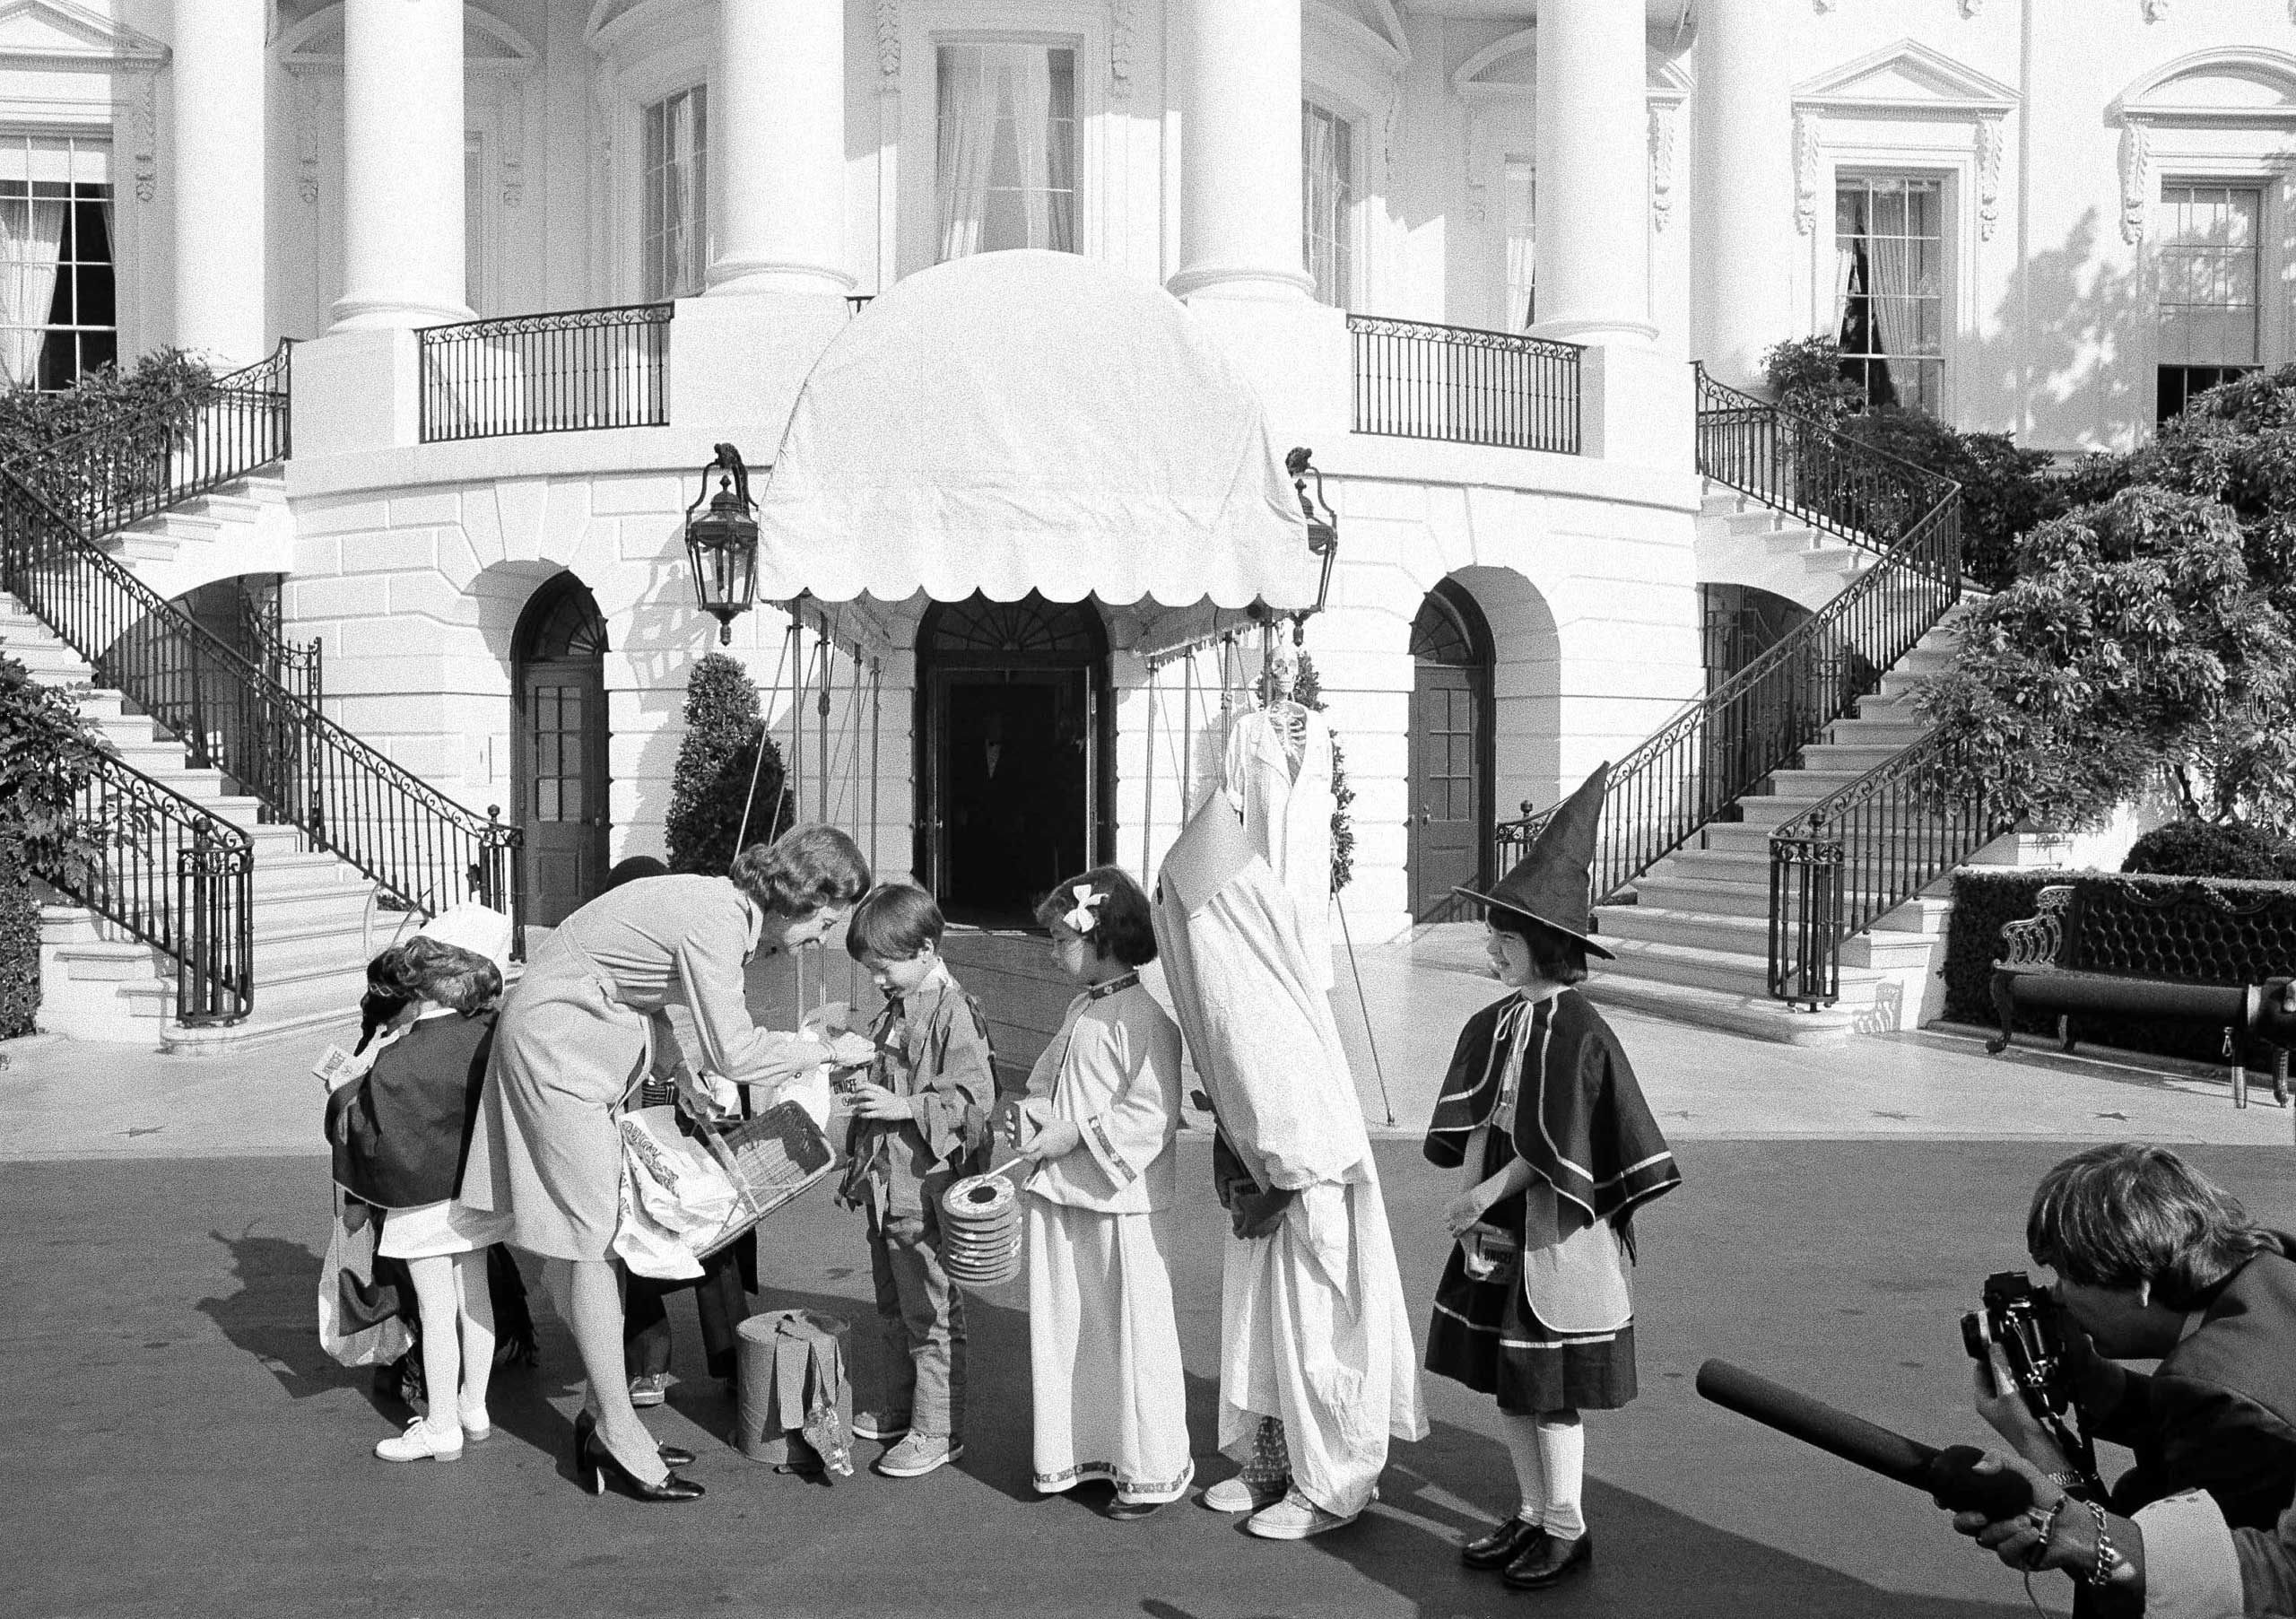 First lady Betty Ford greets costumed school children on the White House South Lawn on Oct. 31, 1974 in Washington D.C. during a Halloween benefit for the United Nations International Children's Emergency Fund.